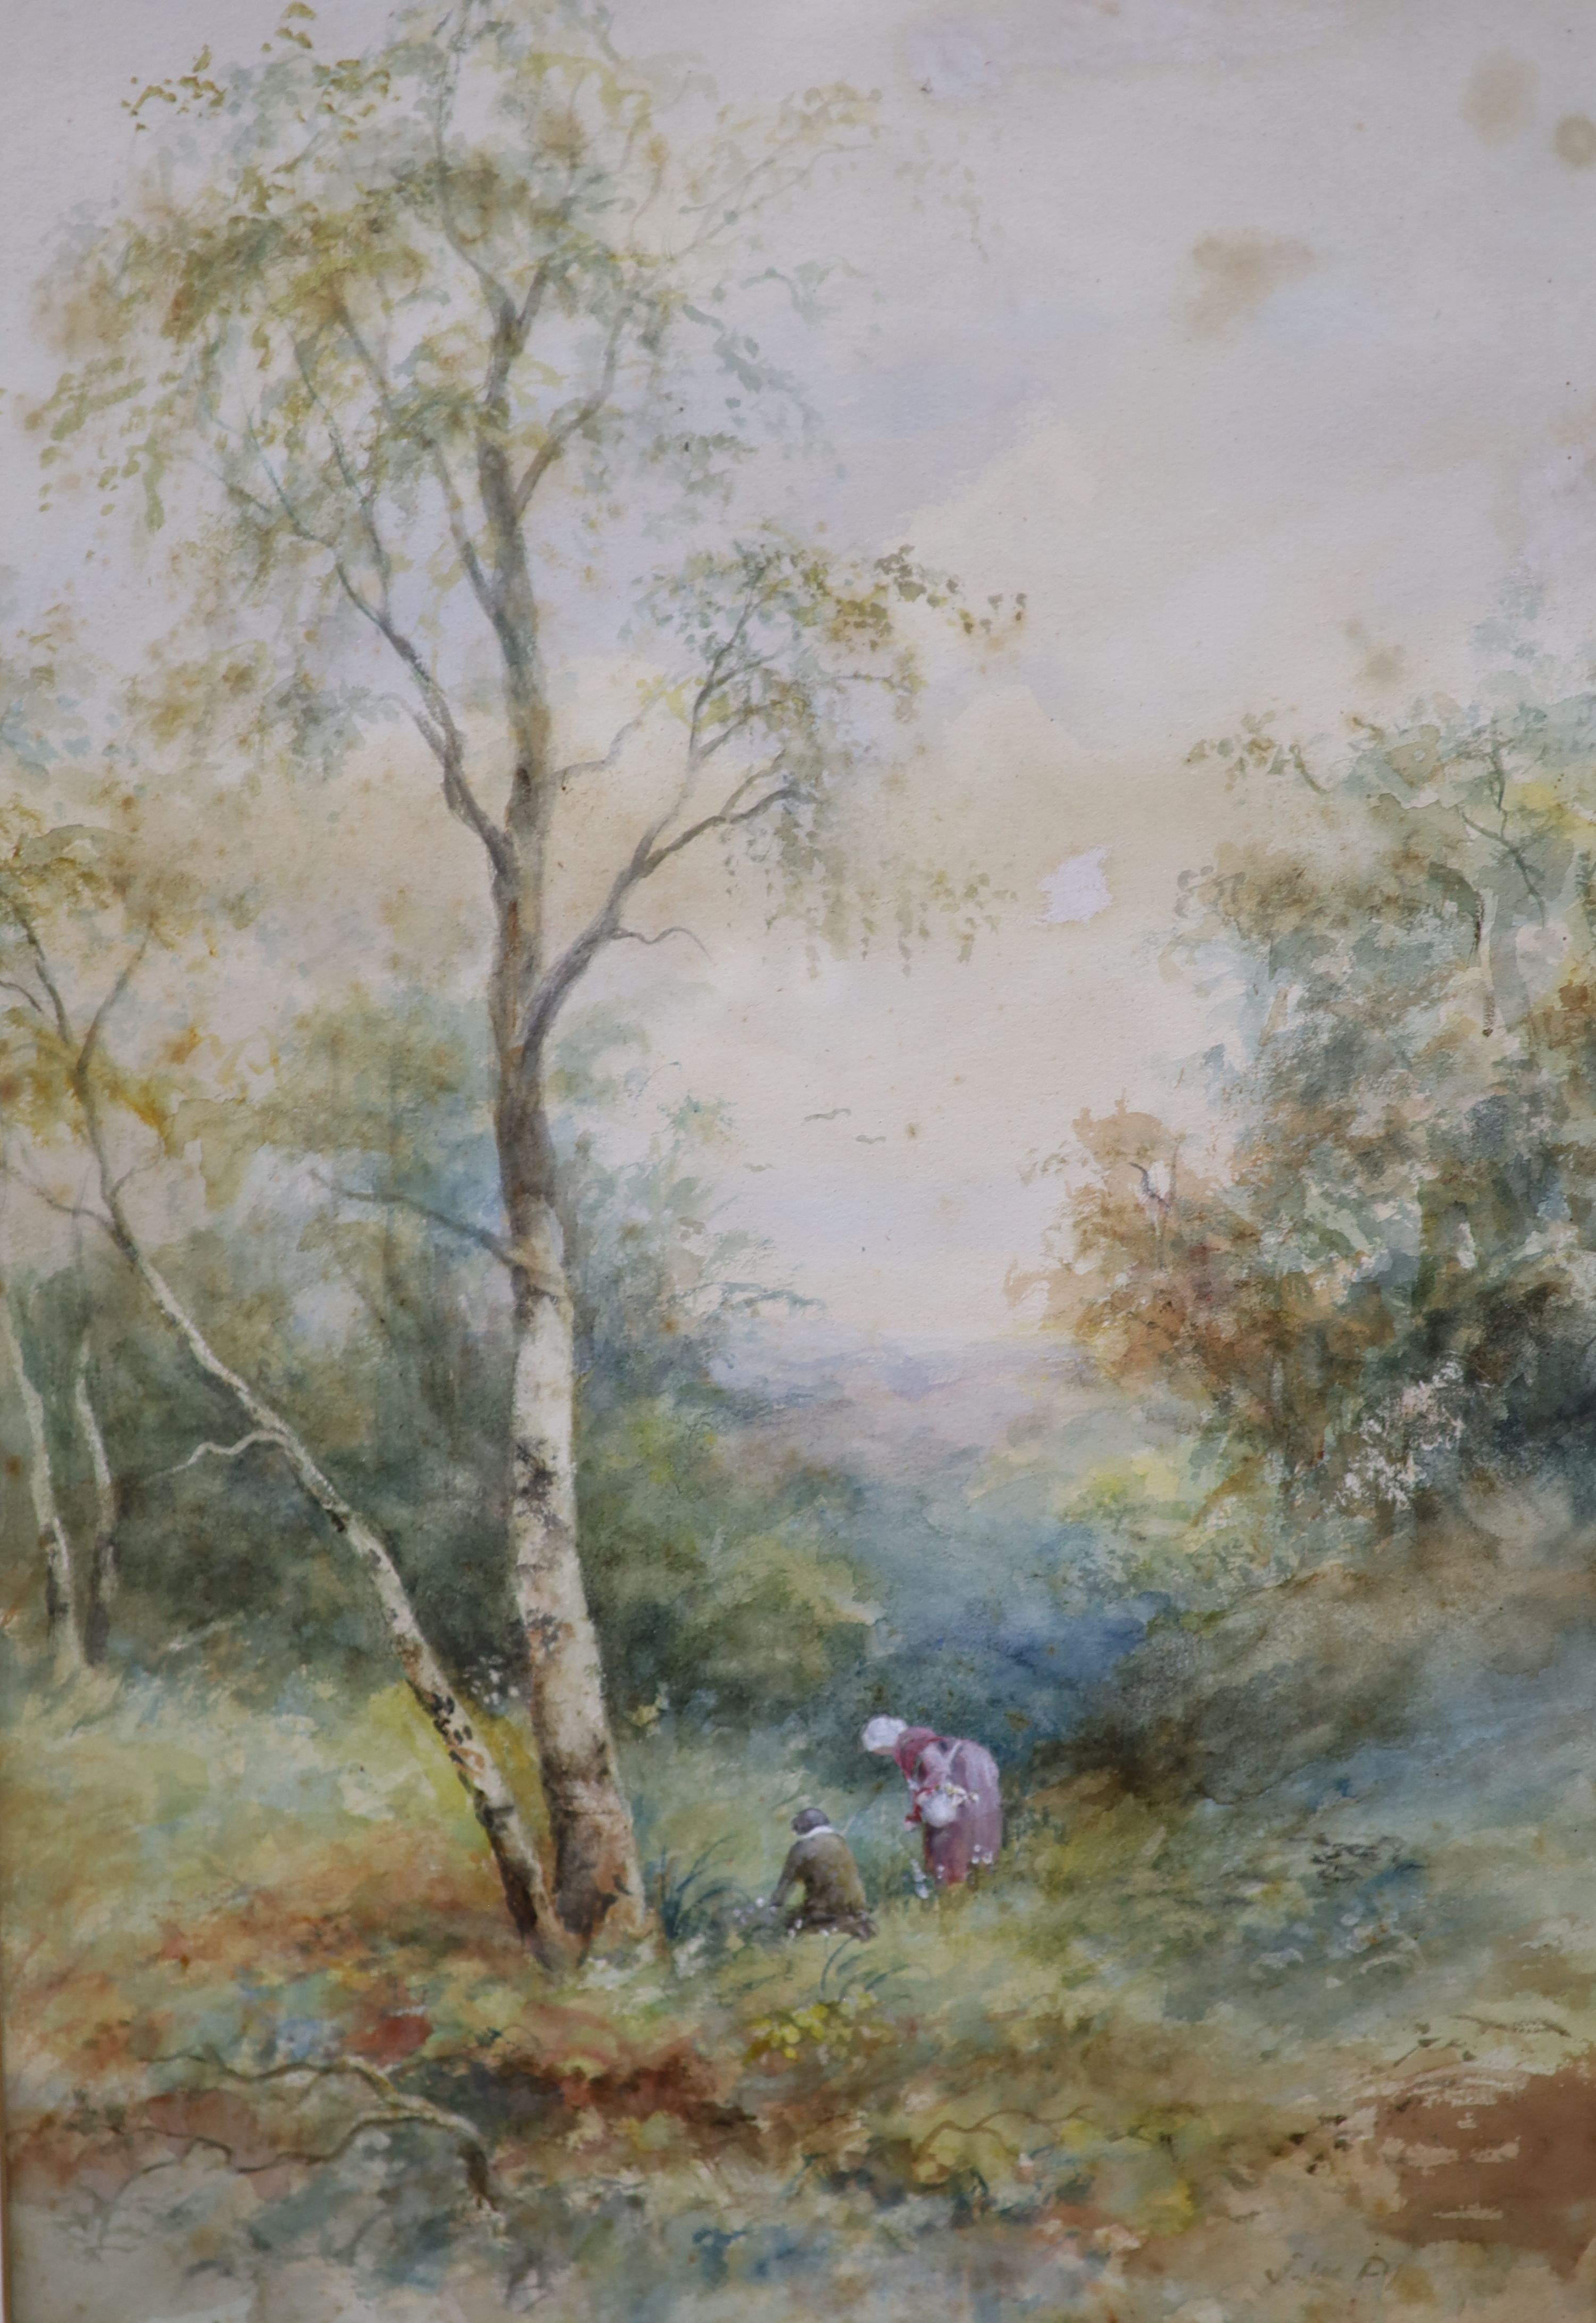 J.W.Philips RA, watercolour, Figures in woodland, signed, 46 x 32cm